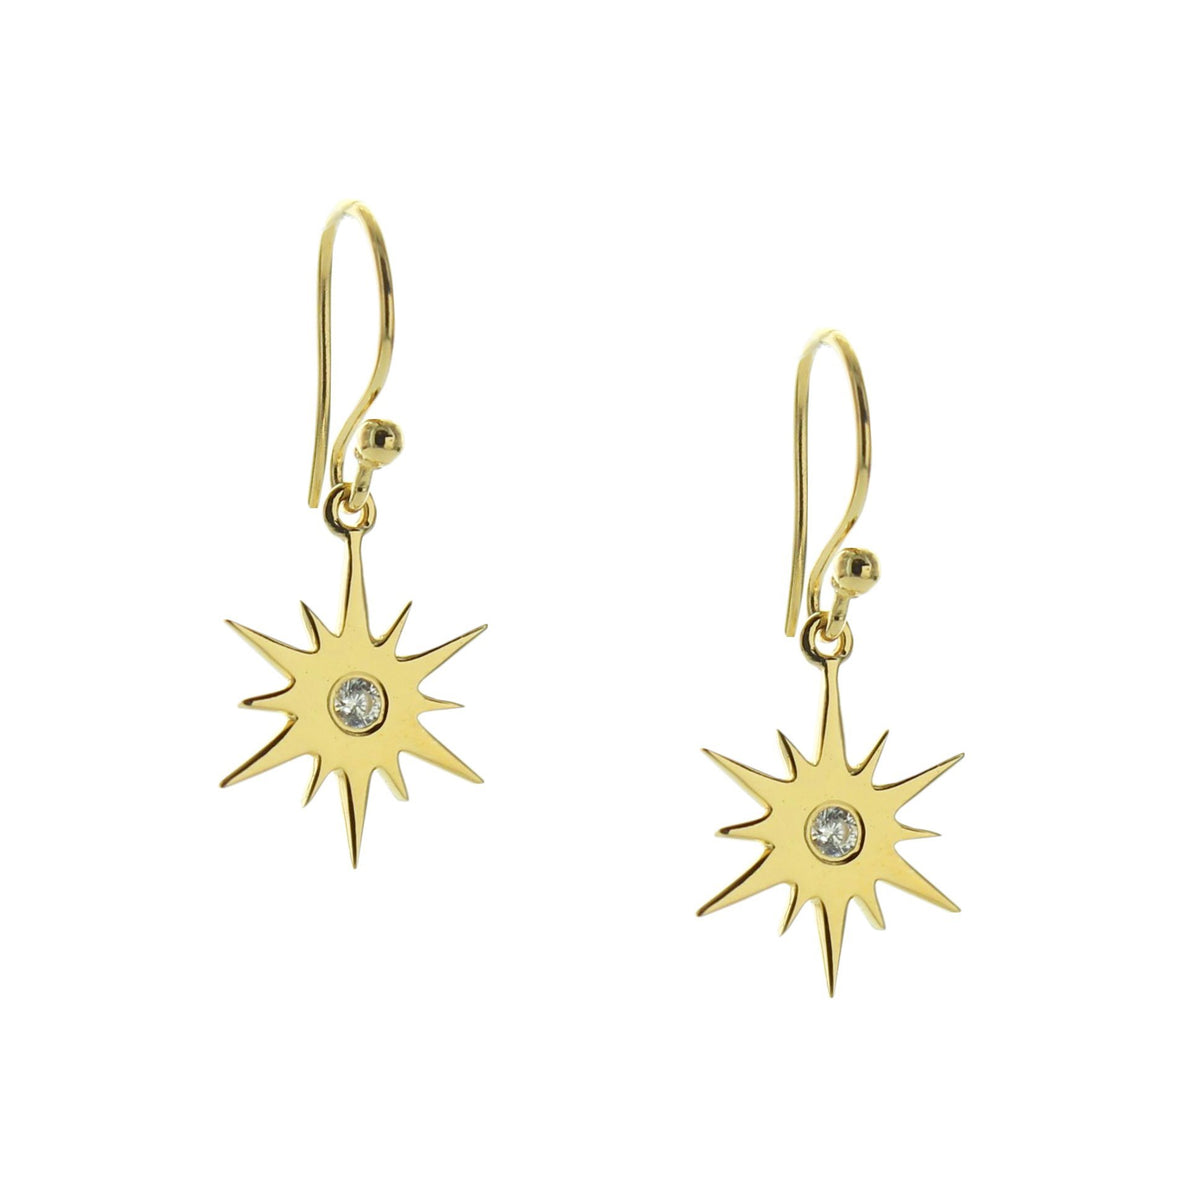 BELIEVE STELLAR DROP EARRINGS - CUBIC ZIRCONIA & GOLD - SO PRETTY CARA COTTER